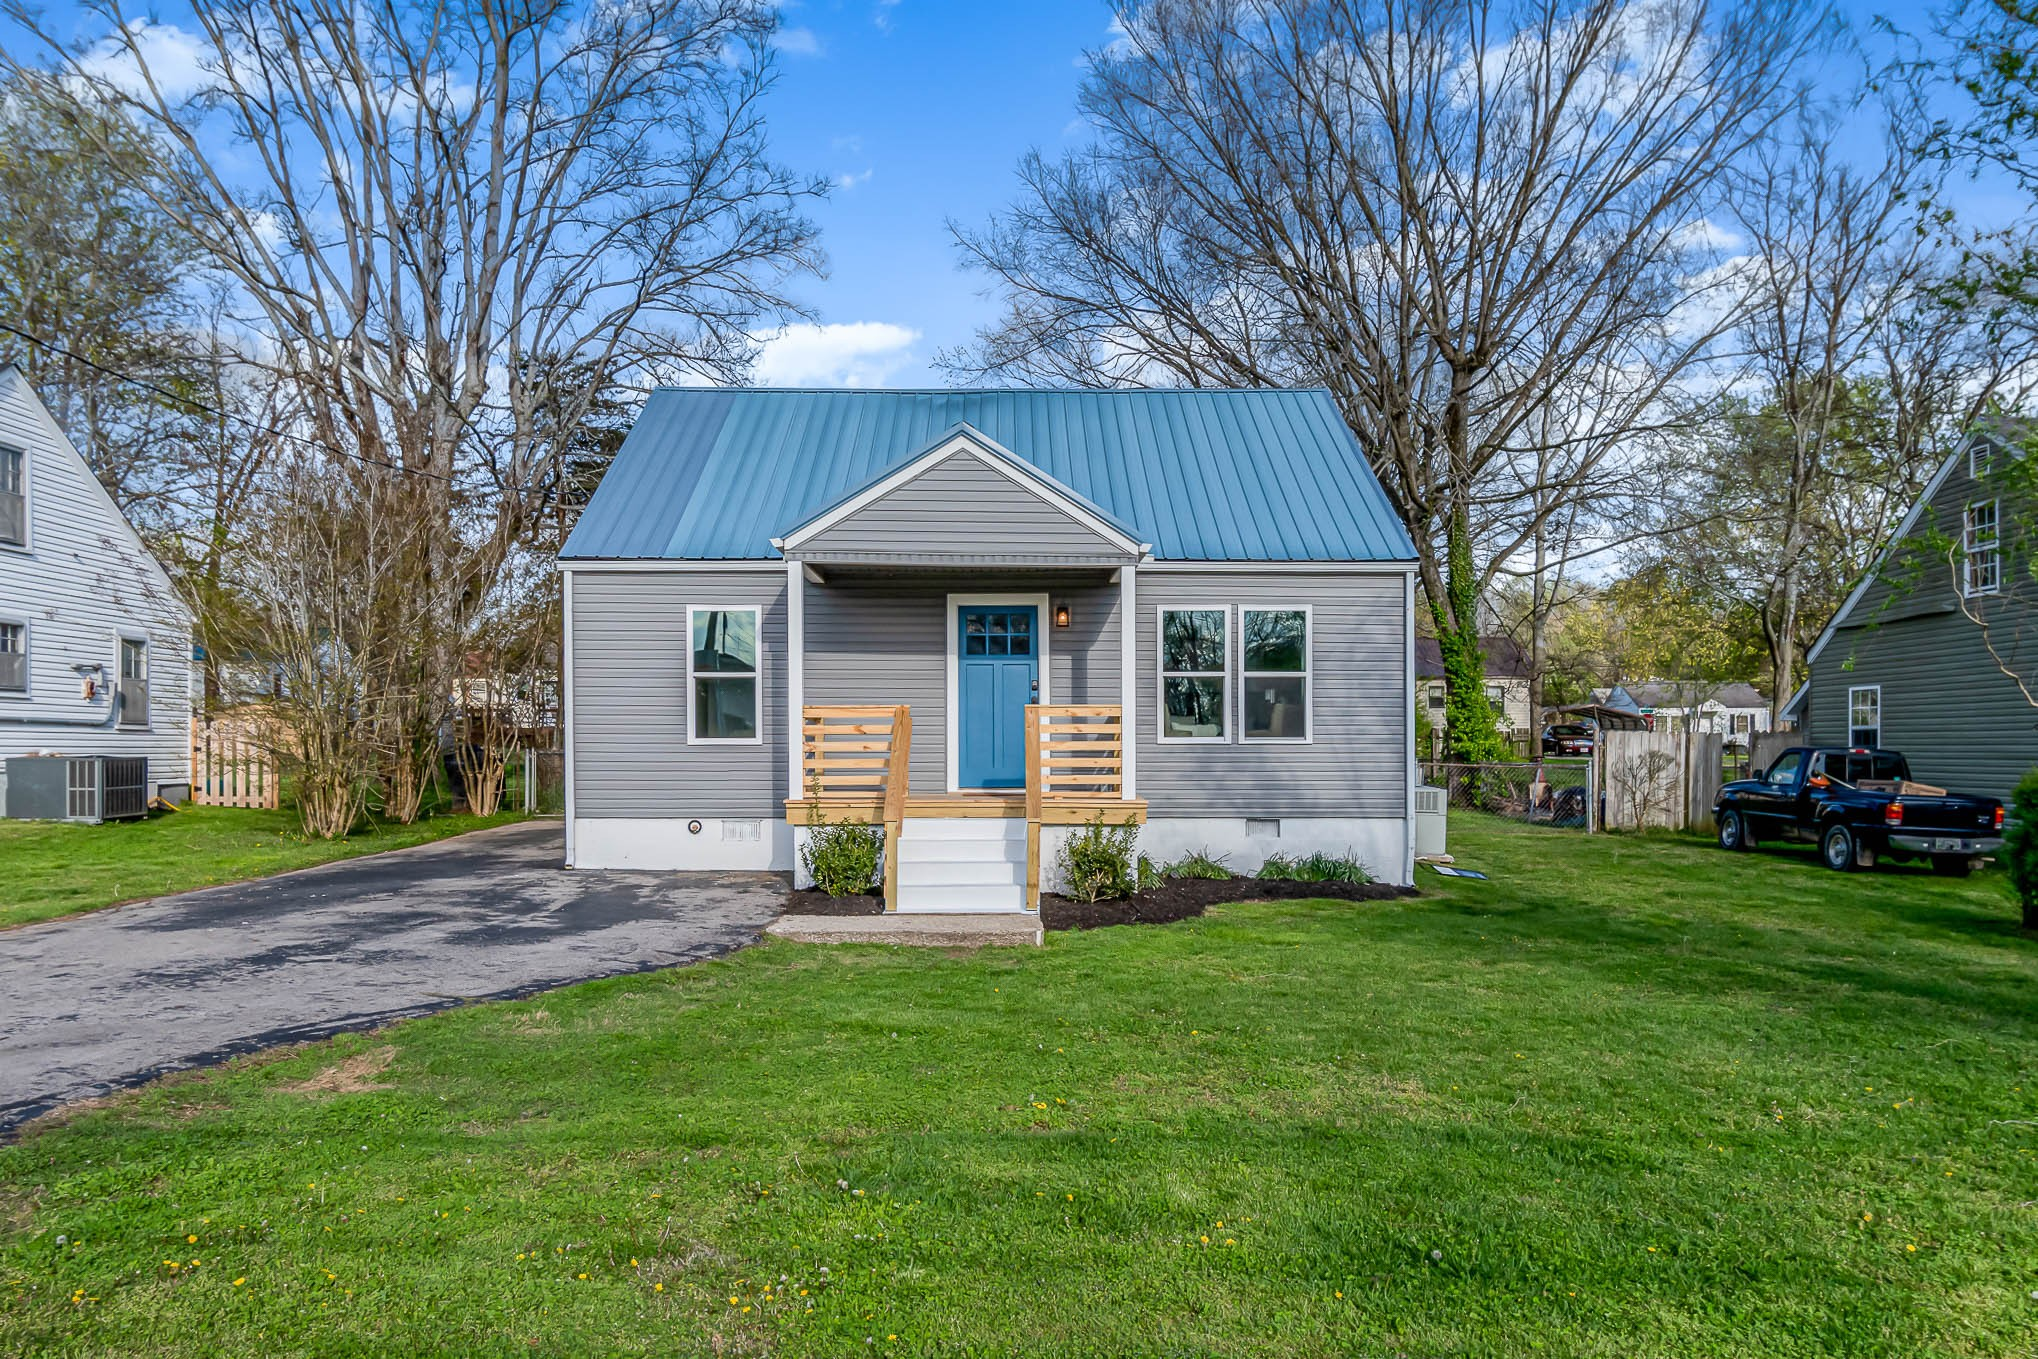 FULLY renovated cottage with NEW siding, windows, plumbing/electricity, floors, all new paint, brand new Samsung stainless steel appliances, and much more! Bright and spacious with new landscaping and great fenced-in back yard.  Shed for storage even has power. Close to the square, shopping, and only three minutes to the best cinnamon rolls in Columbia!